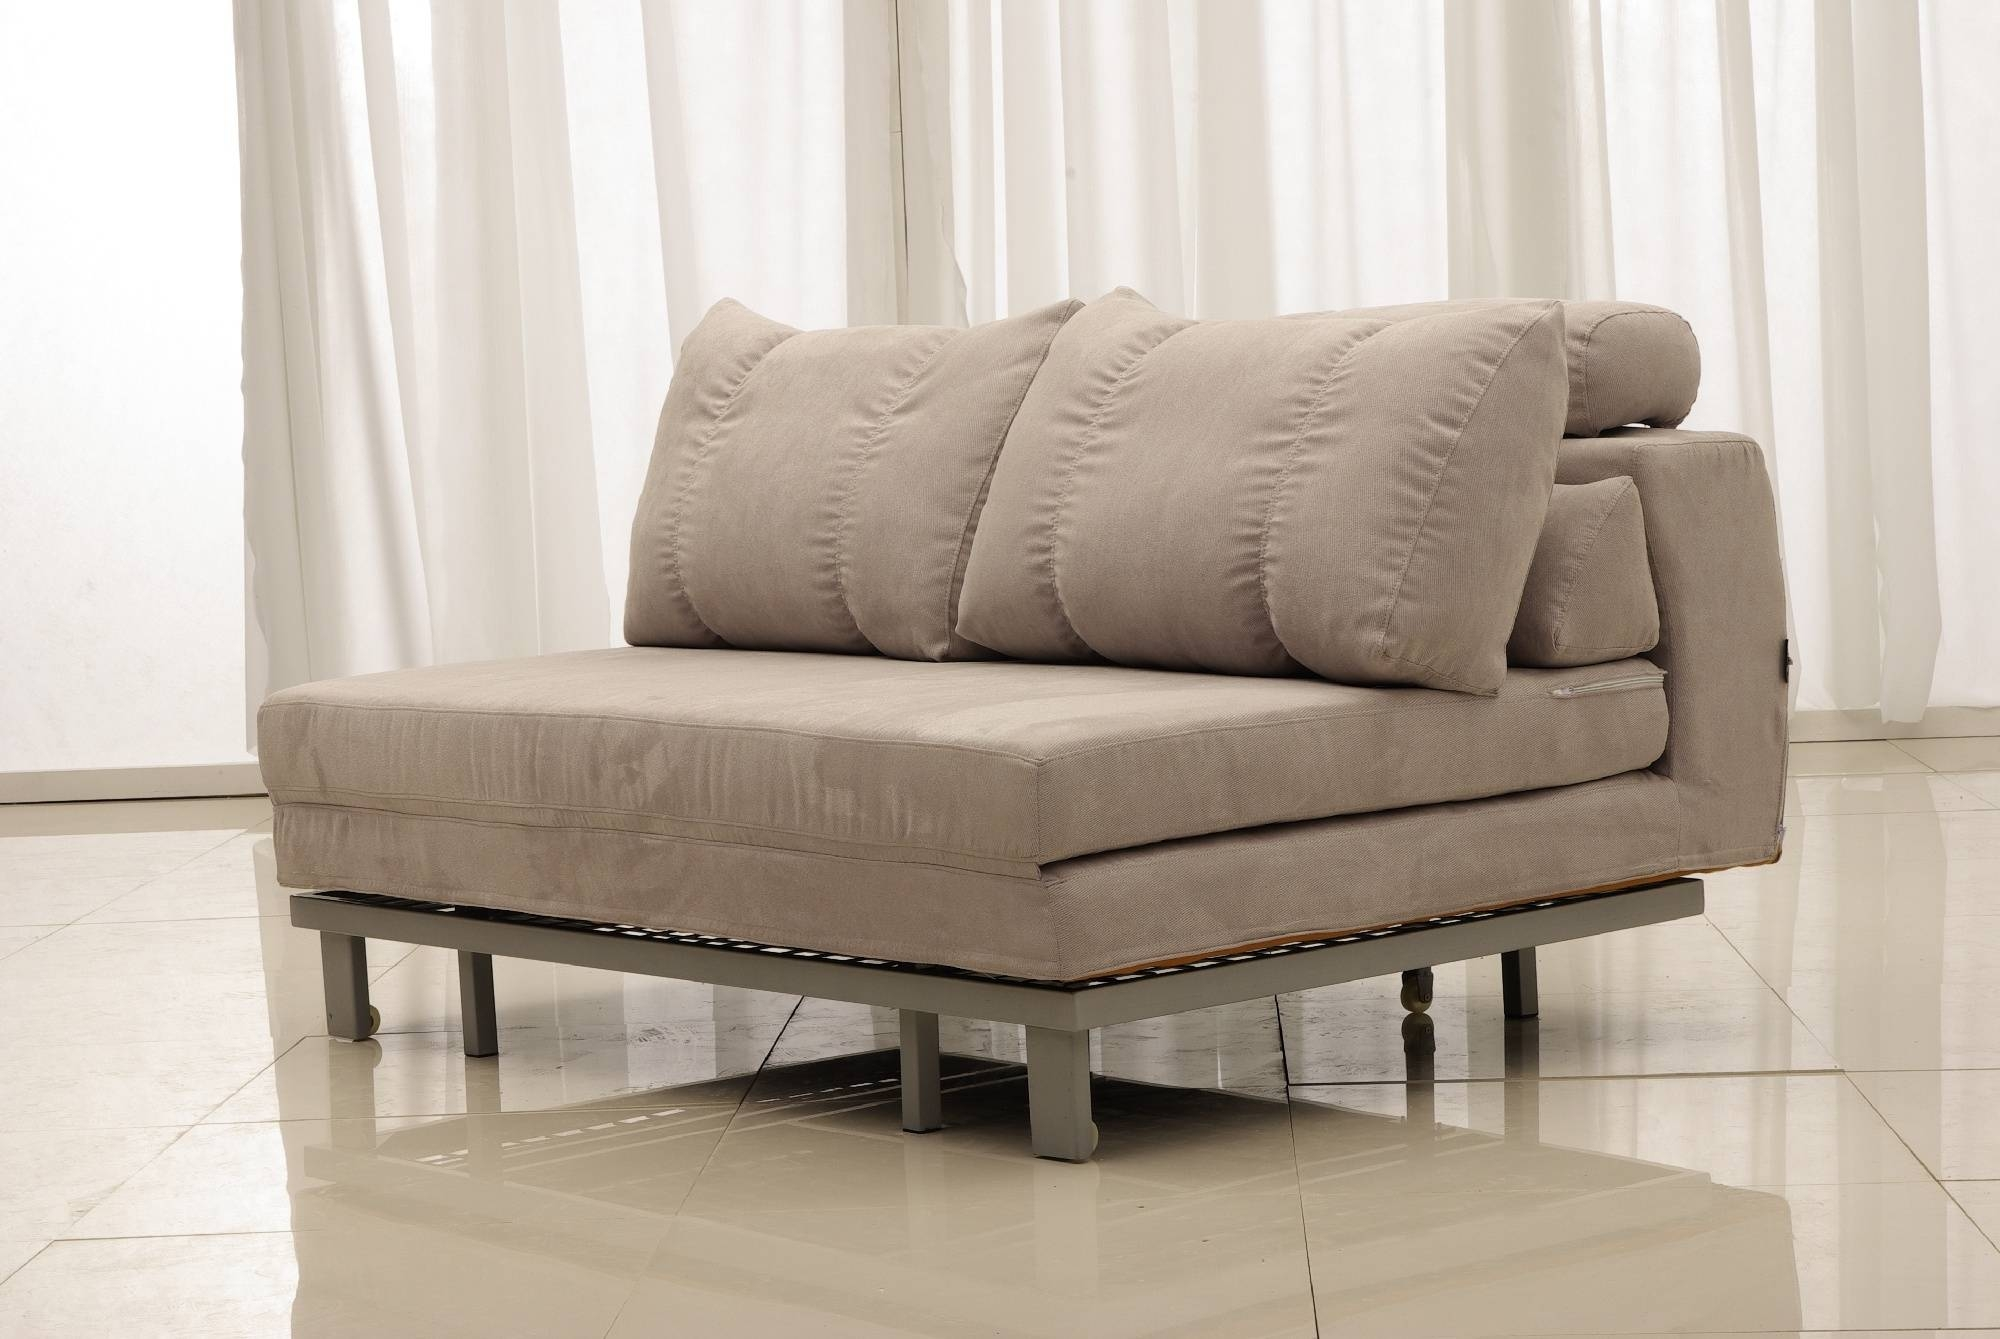 Accessories : Fold Out Twin Bed Chair In Fascinating Twin Sofa with regard to Sofa Accessories (Image 2 of 30)